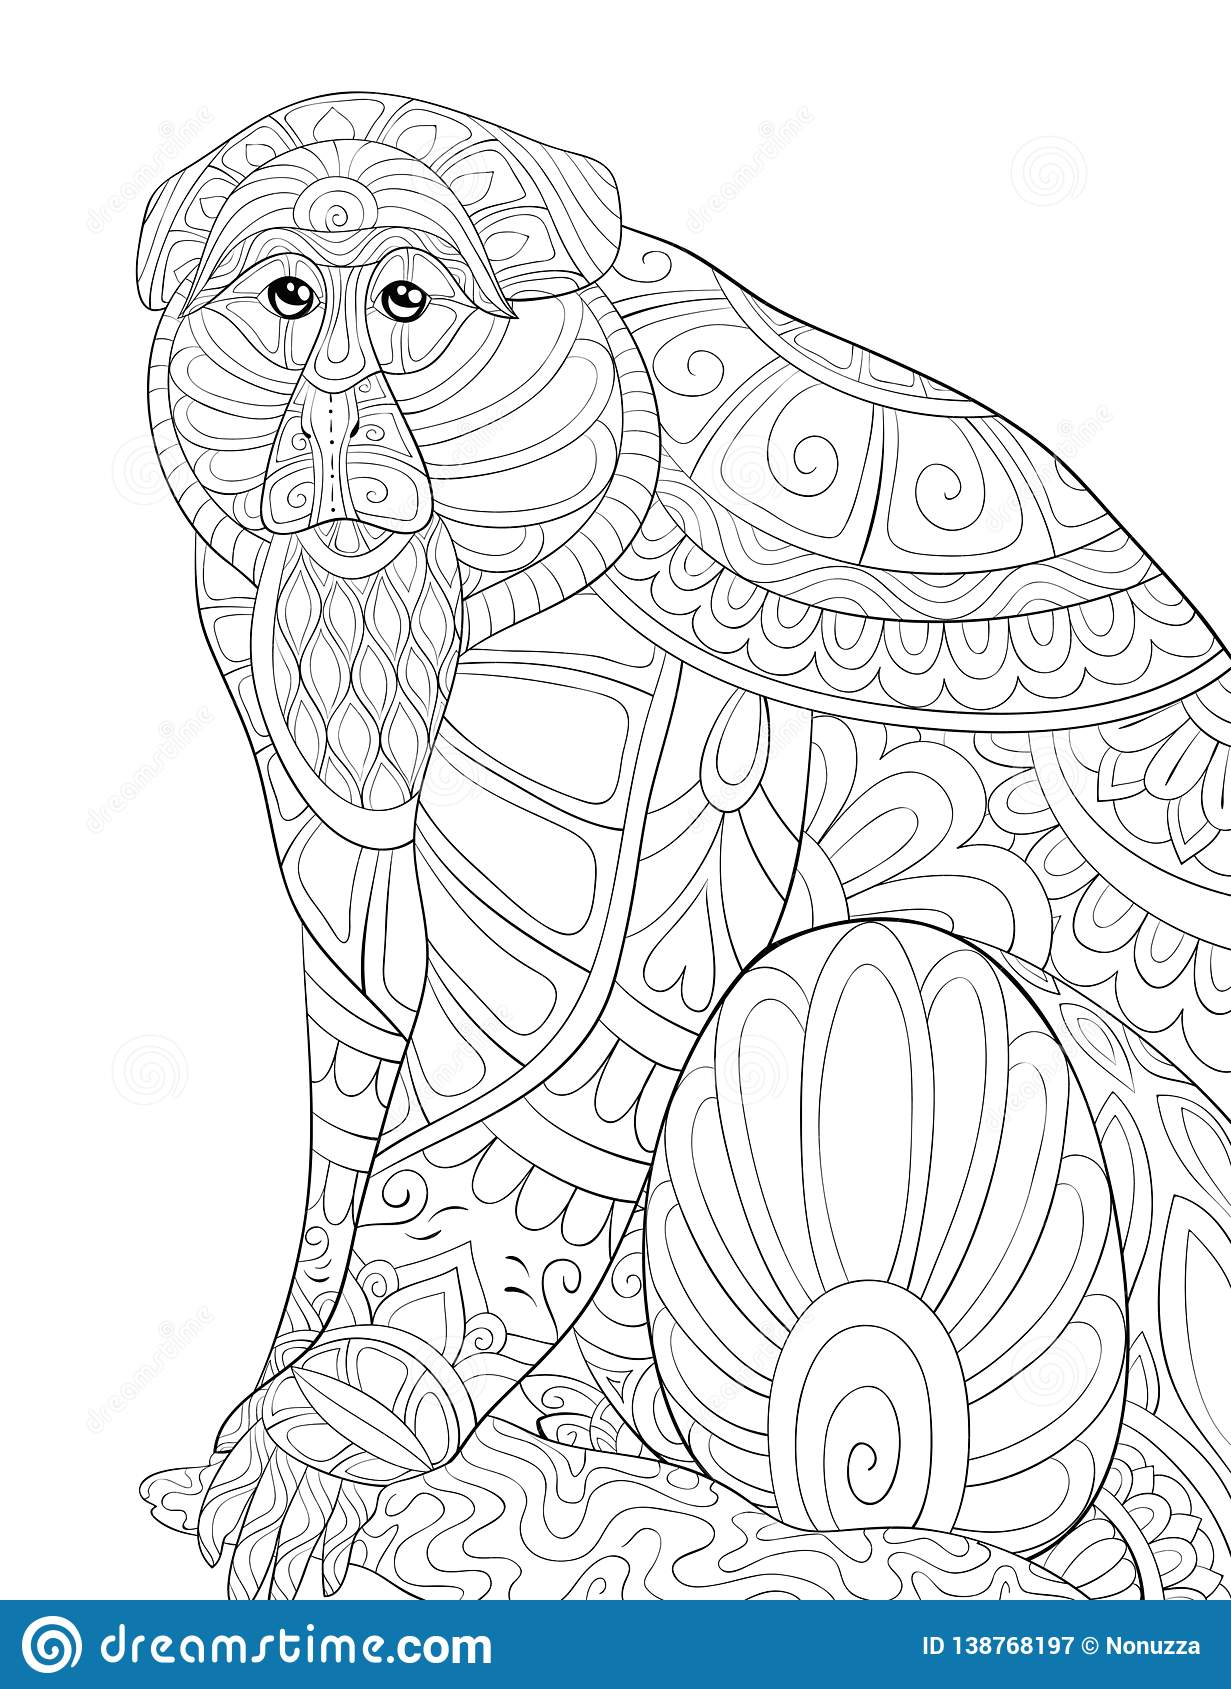 coloring pages : Pictures To Print And Colour Disney New Coloring ... | 1689x1231